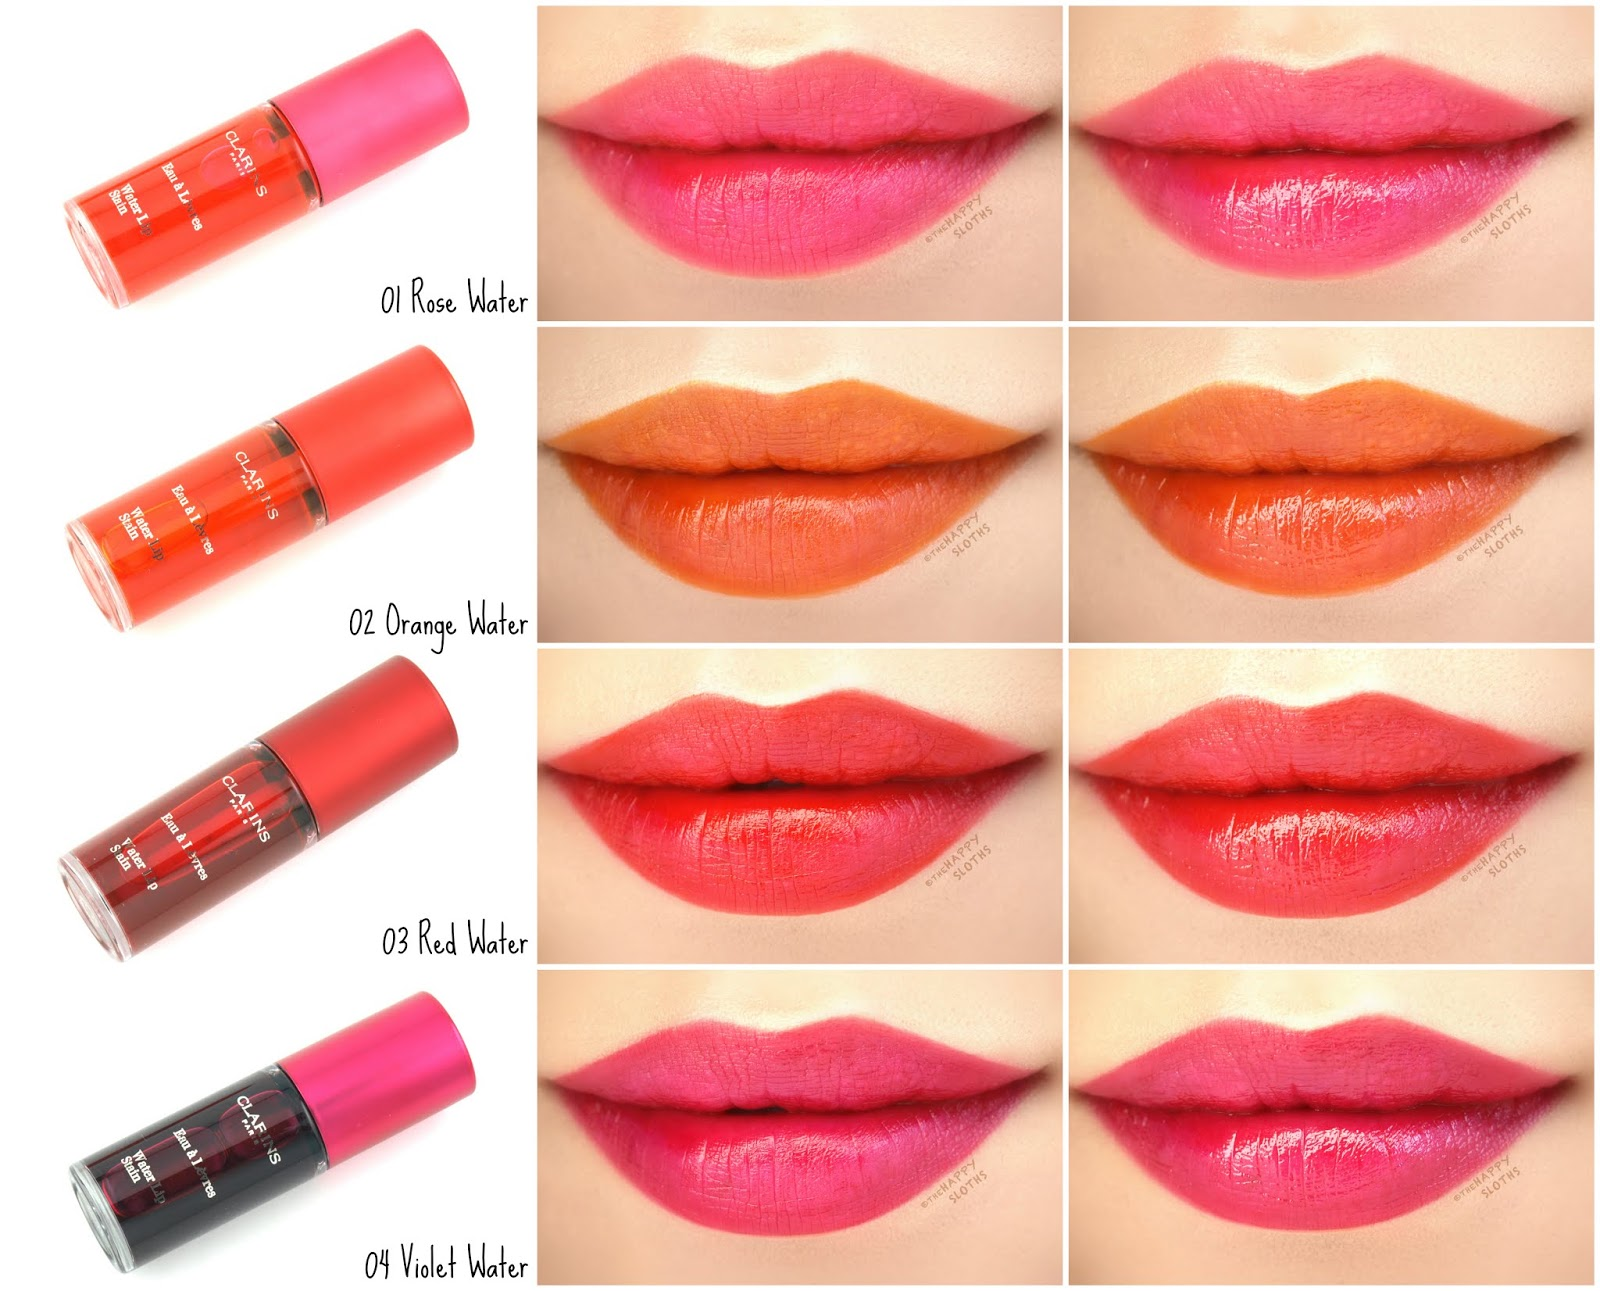 Clarins | Water Lip Stain: Review and Swatches